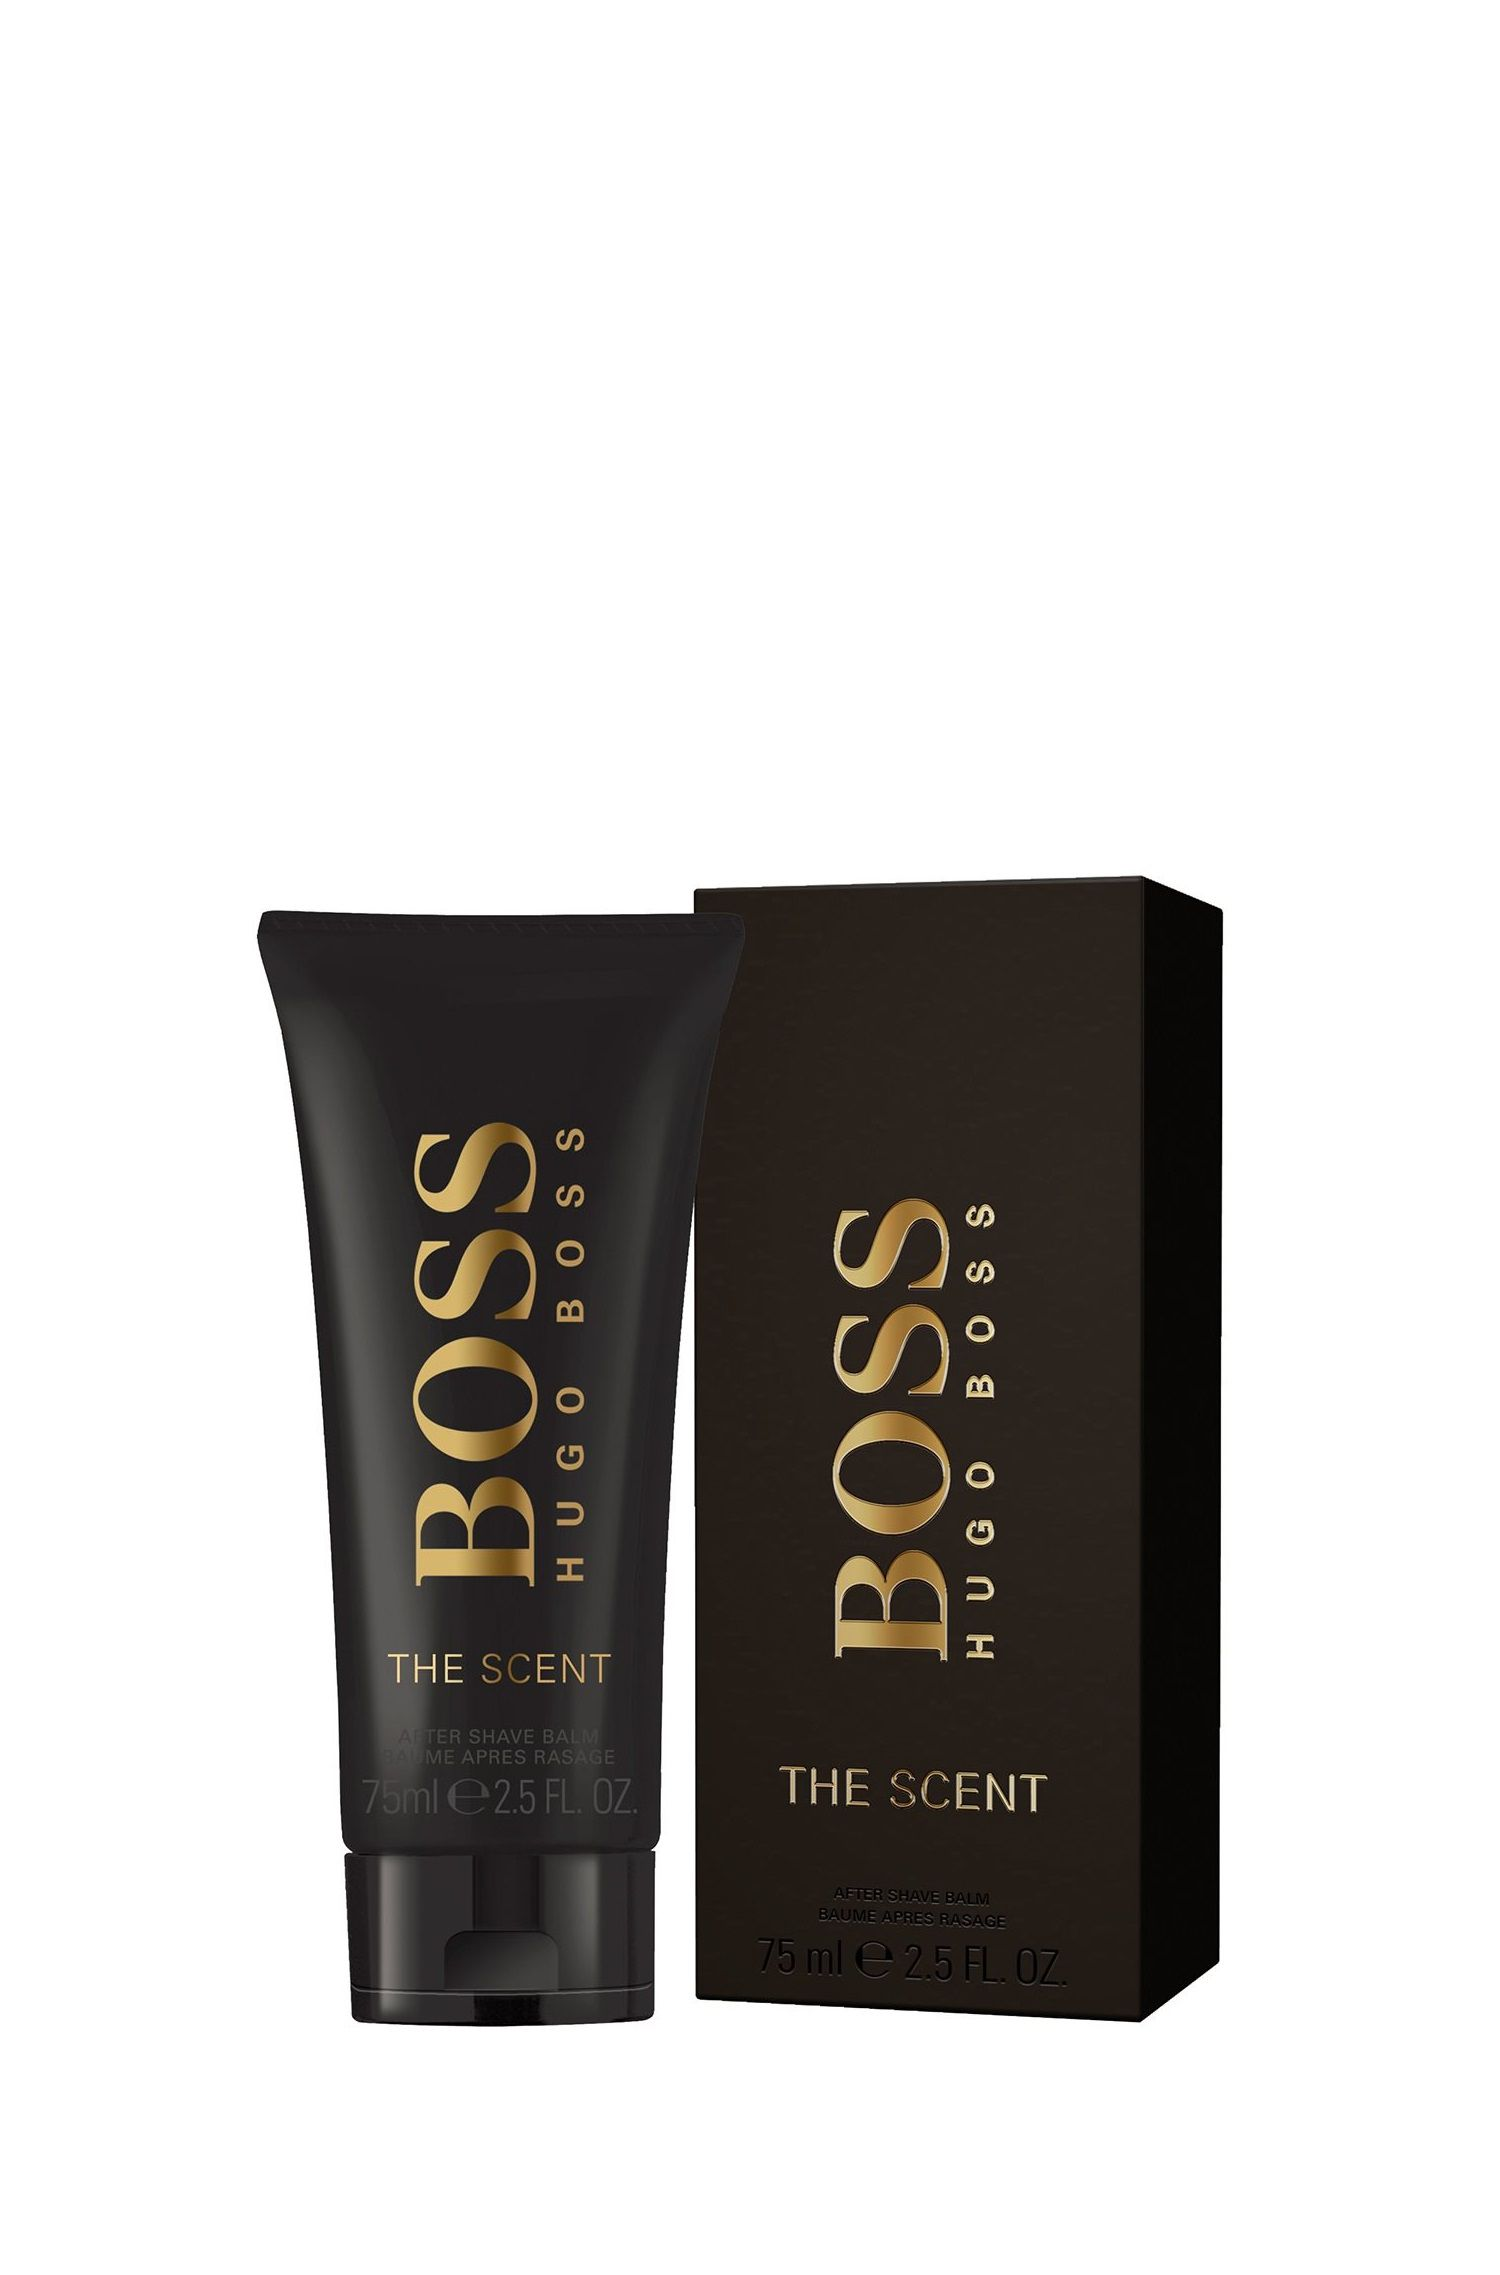 Aftershave balsem: 'BOSS THE SCENT', 75 ml